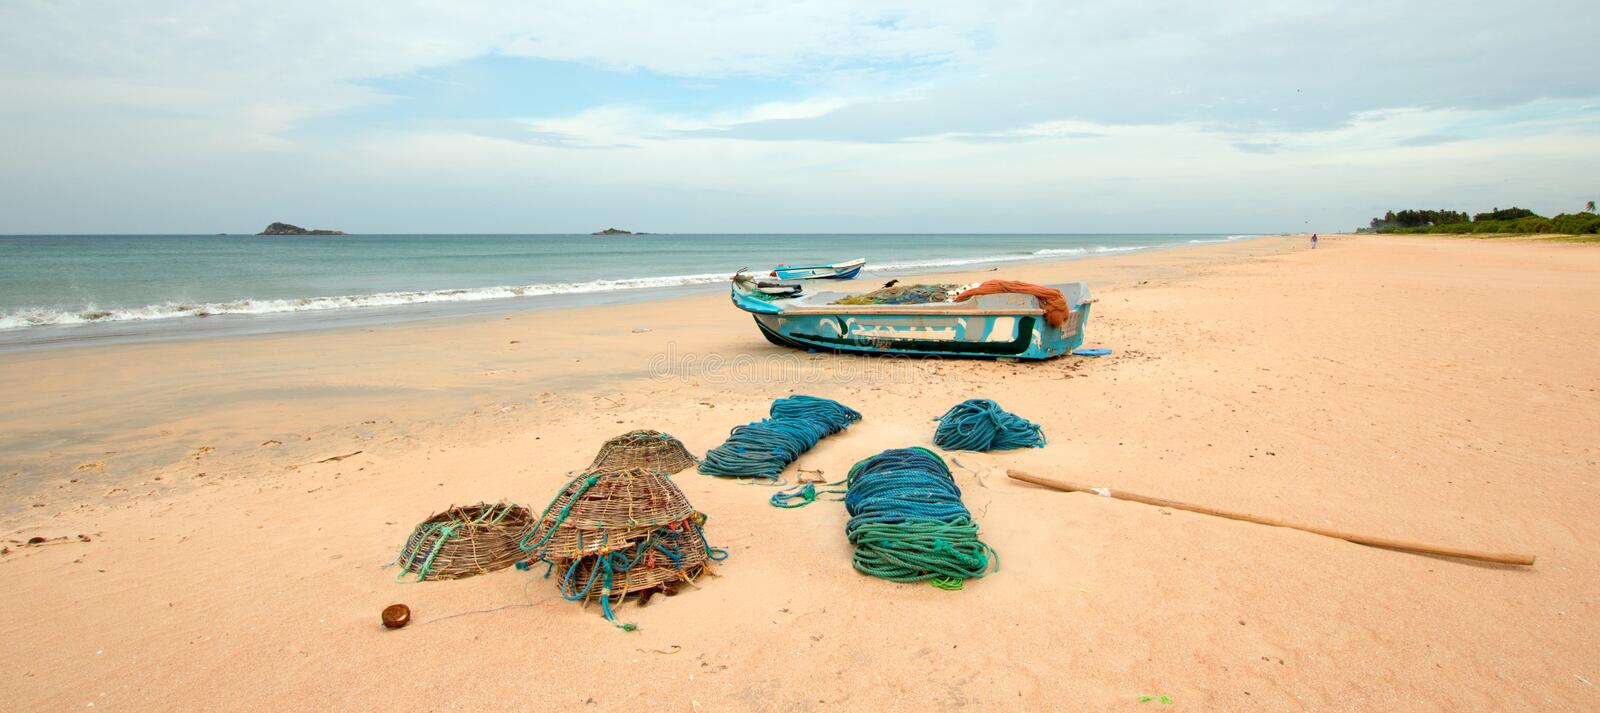 Nets, traps, baskets, and ropes next to fishing boat on Nilaveli beach in Trincomalee Sri Lanka. Asia stock photography